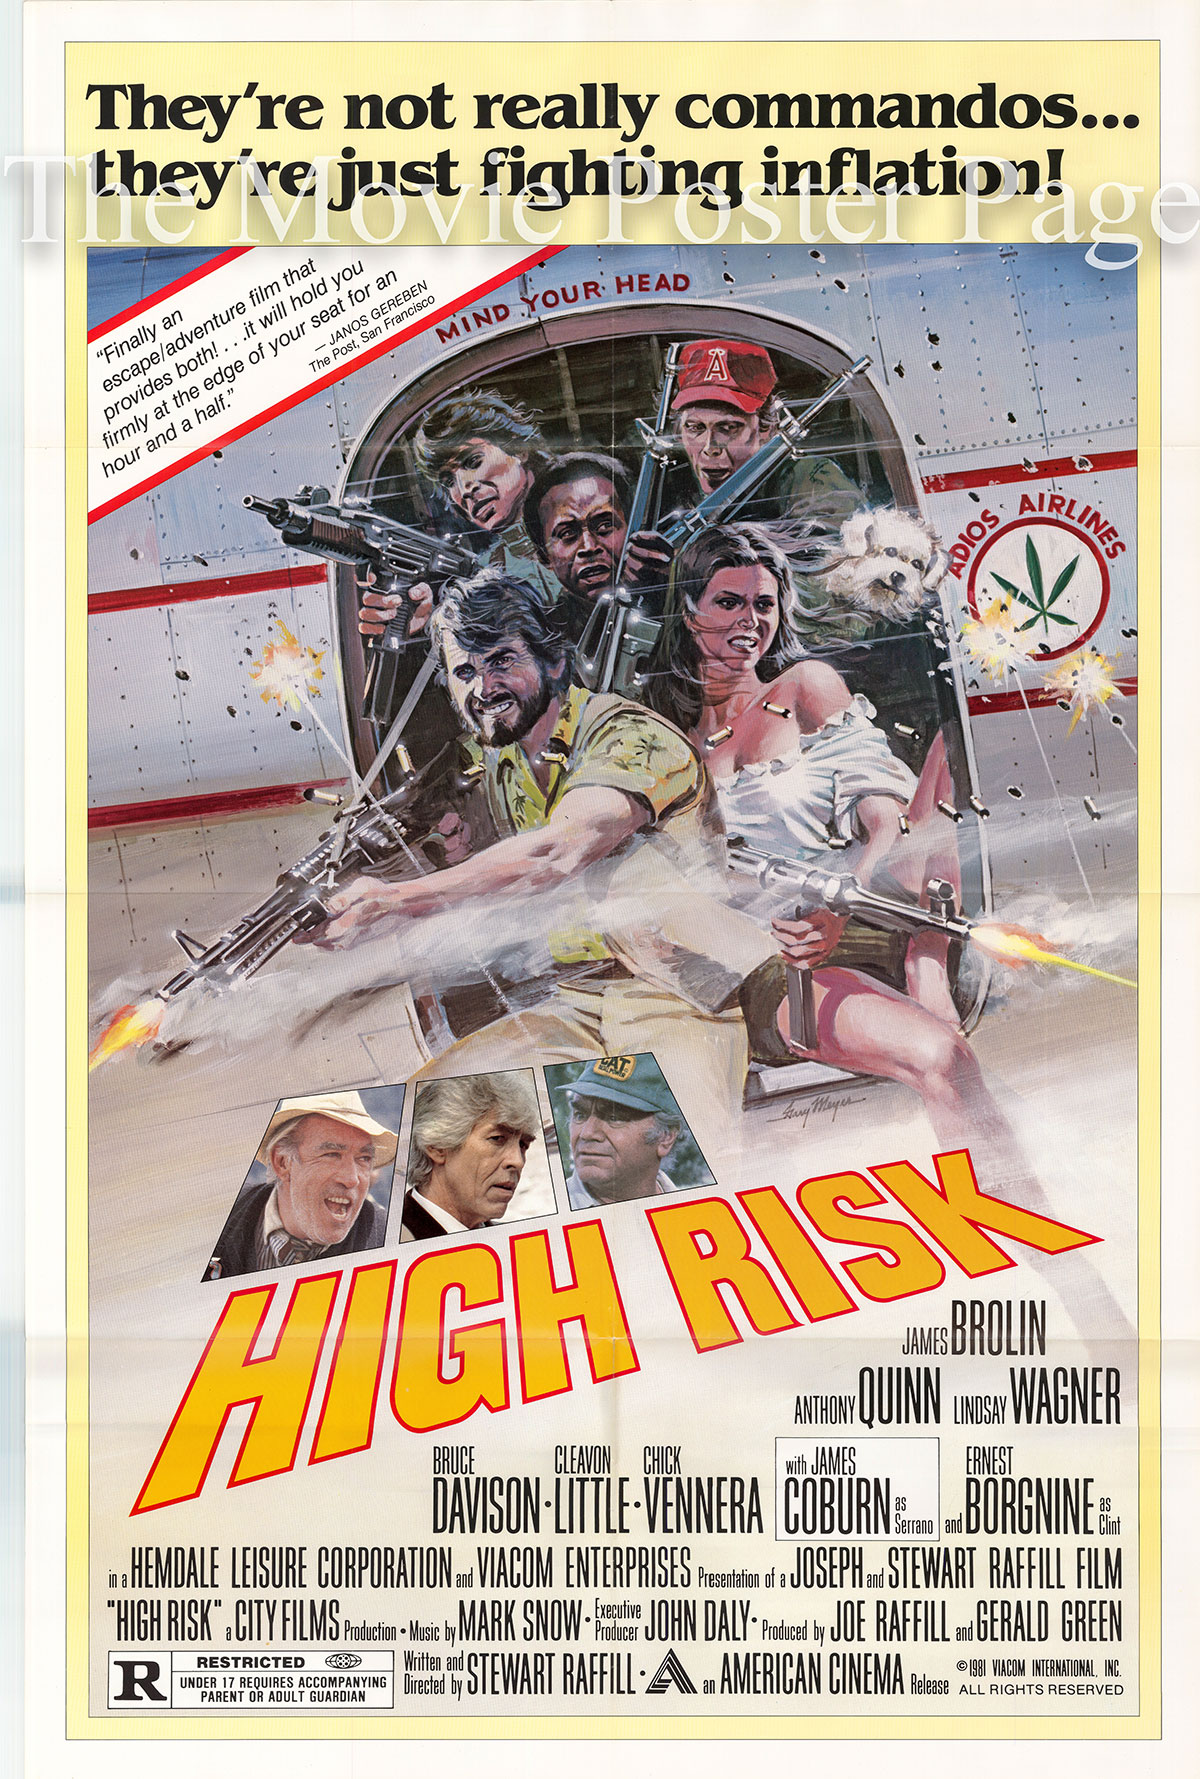 Pictured is a US promotional poster for the 1981 Stewart Raffill film High Risk starring James Brolin.